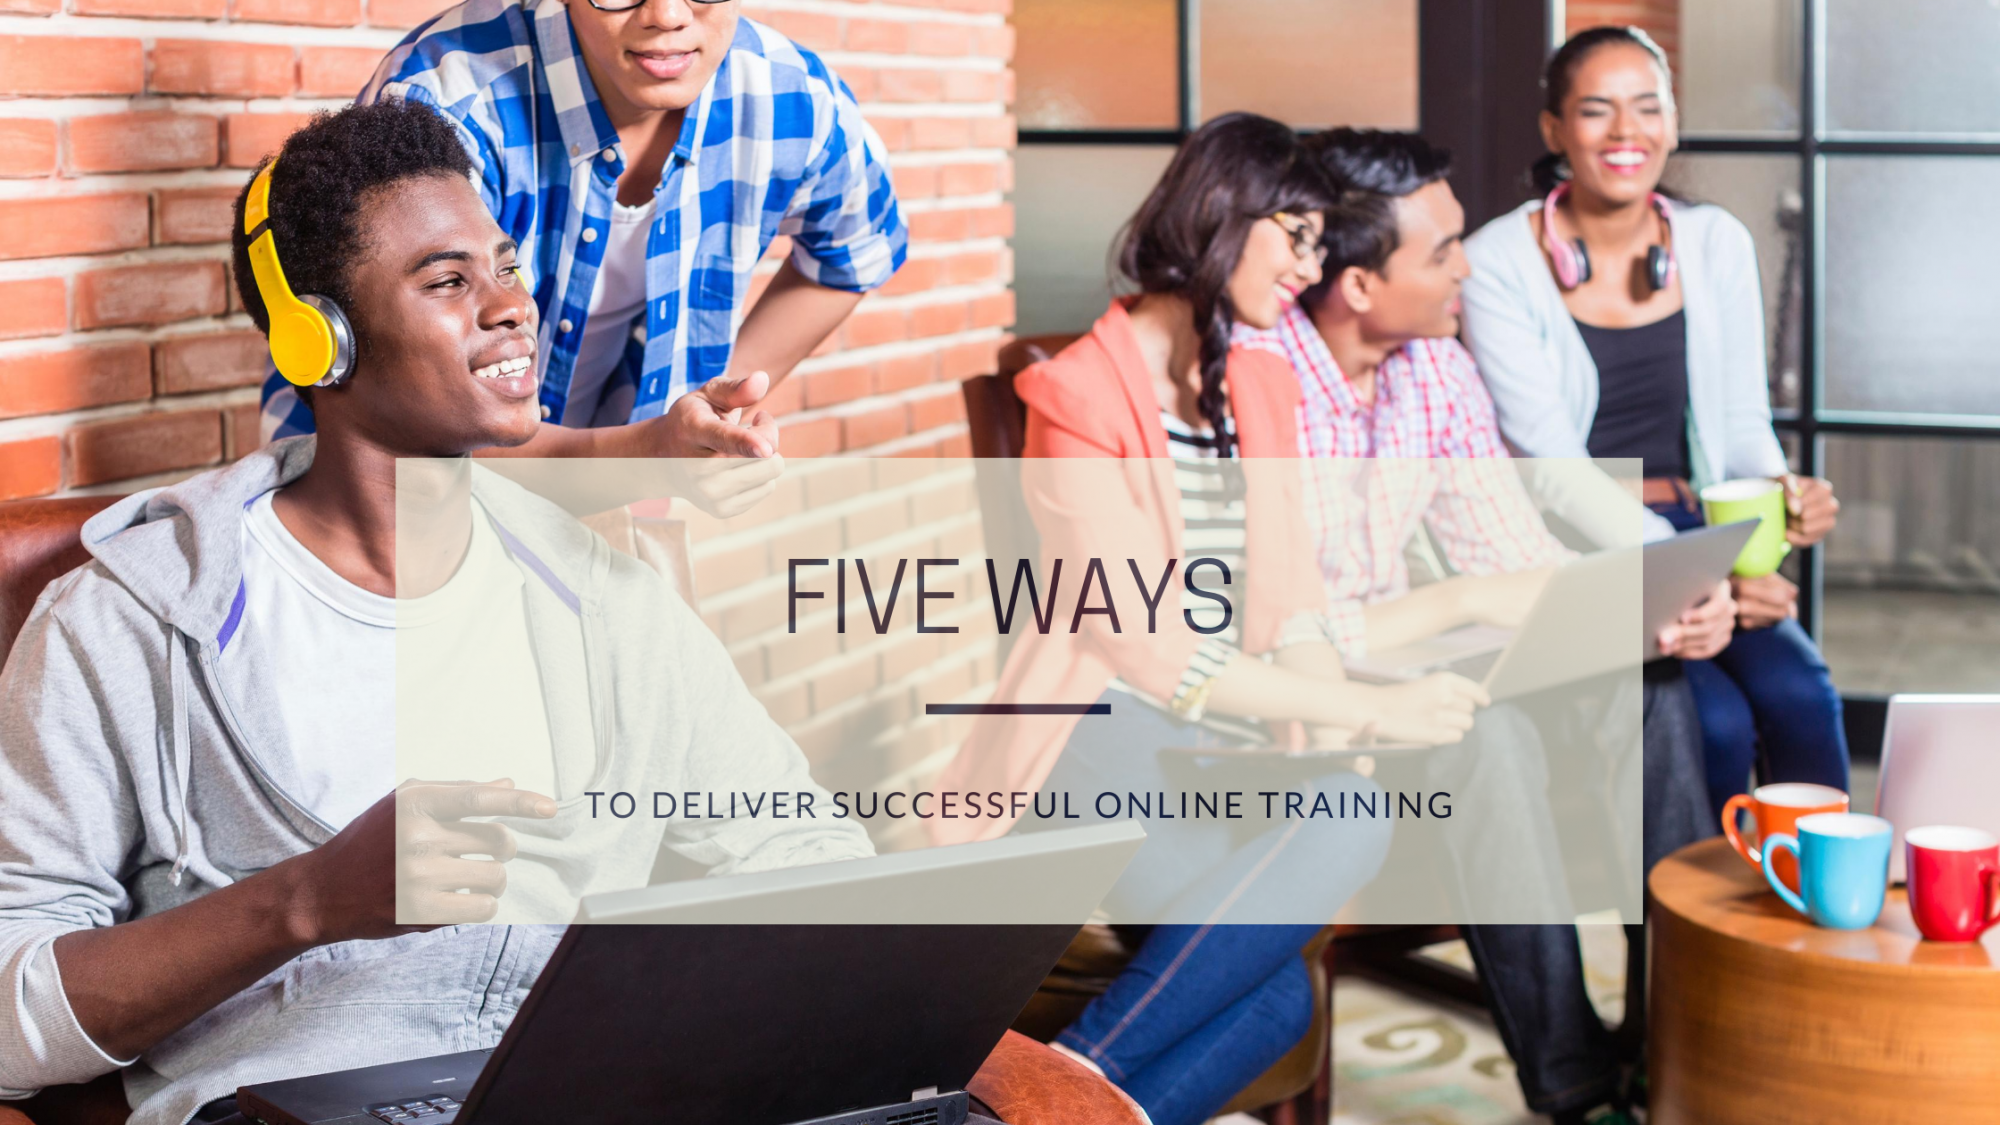 5 ways to Deliver Successful Online Training